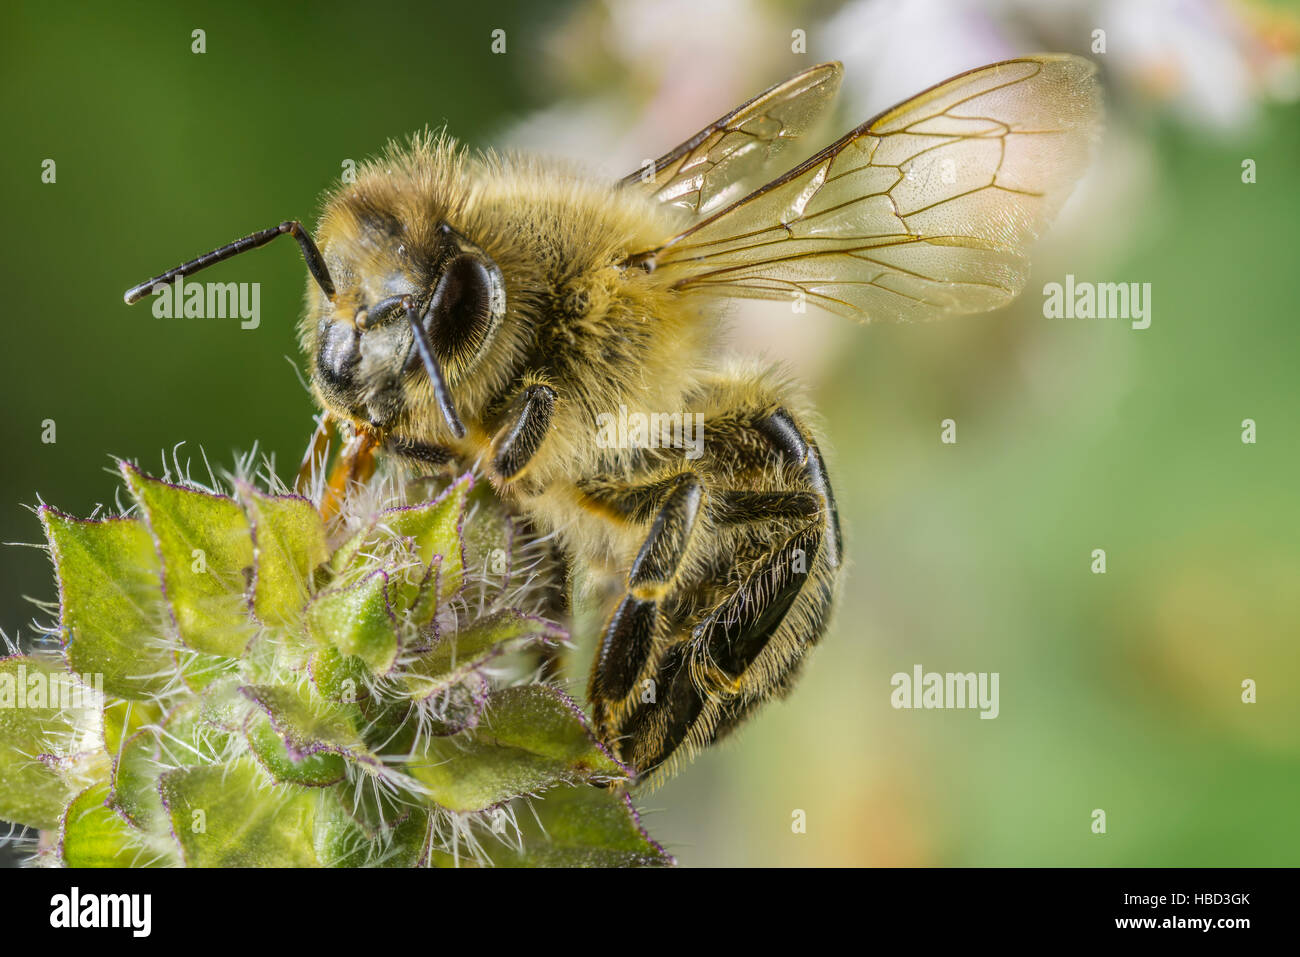 Closeup of a Bee sitting on a flower Stock Photo